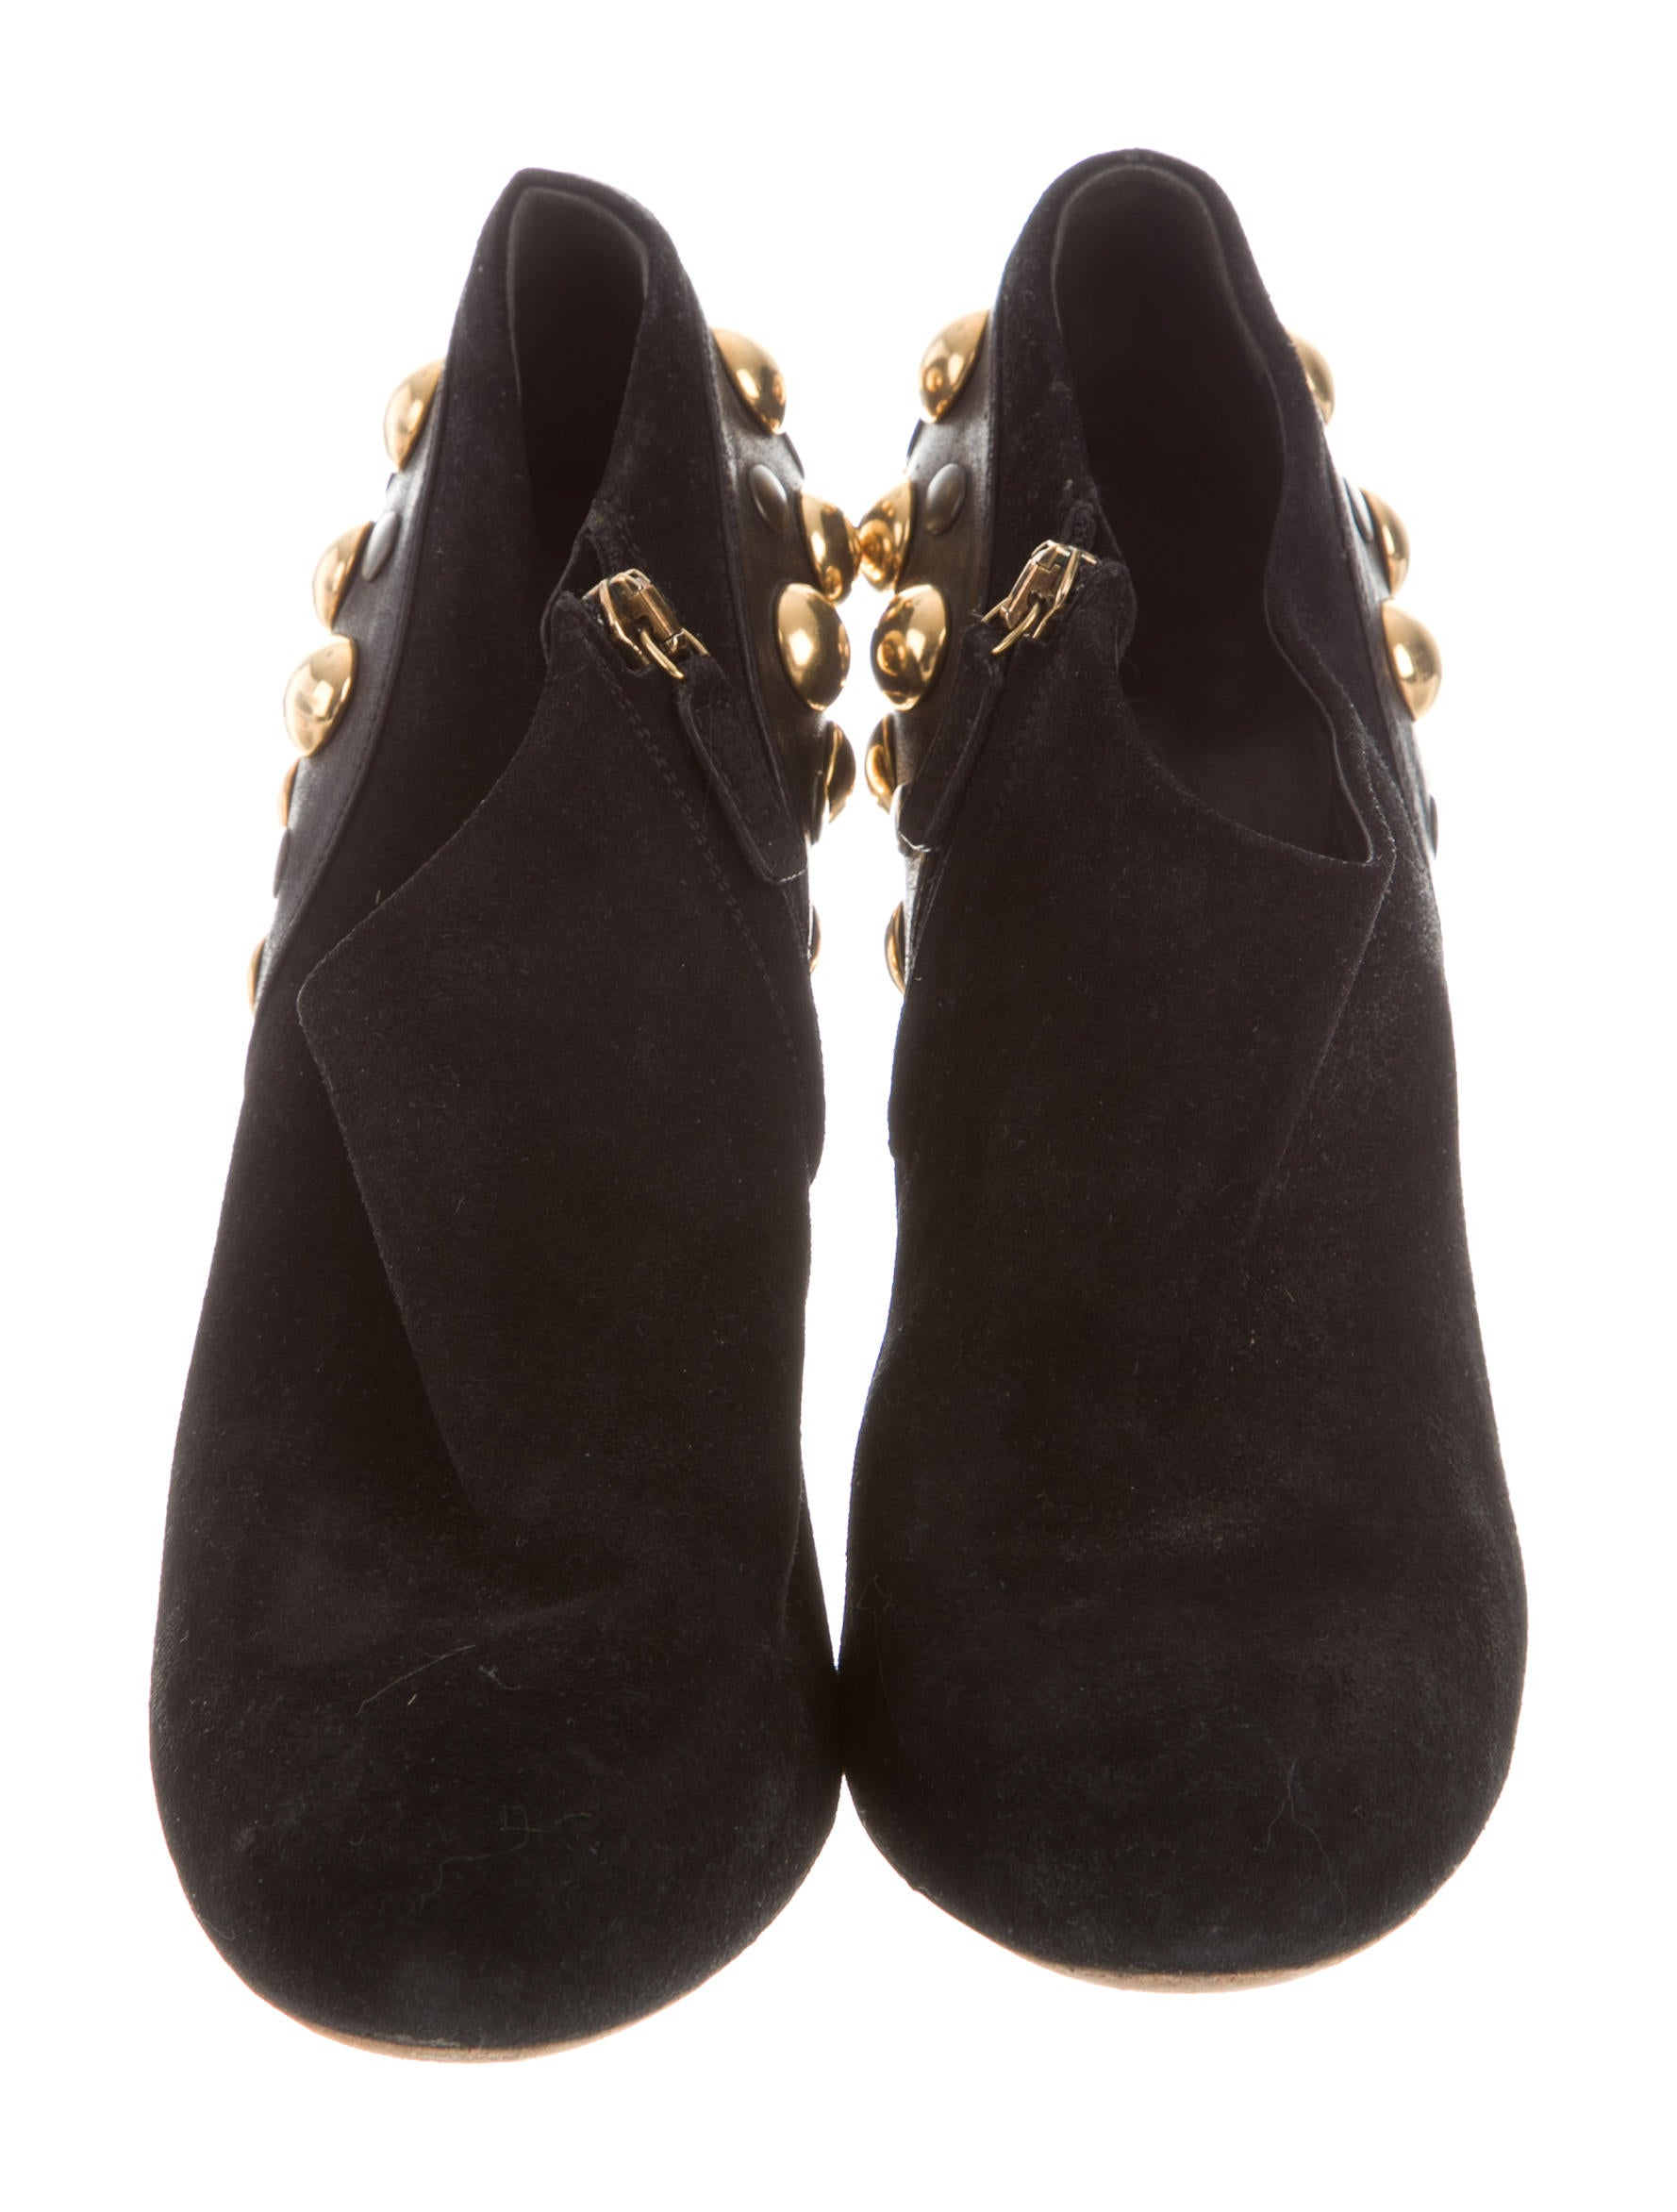 gucci suede studded booties shoes guc161307 the realreal